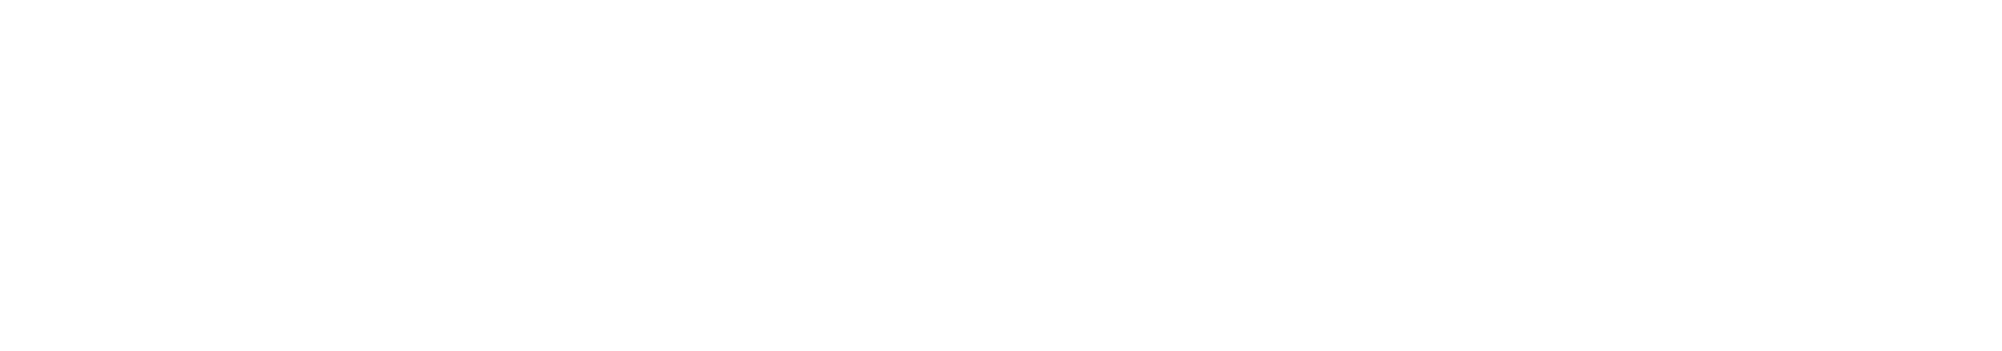 Sony Logo Png - Sony, Transparent background PNG HD thumbnail